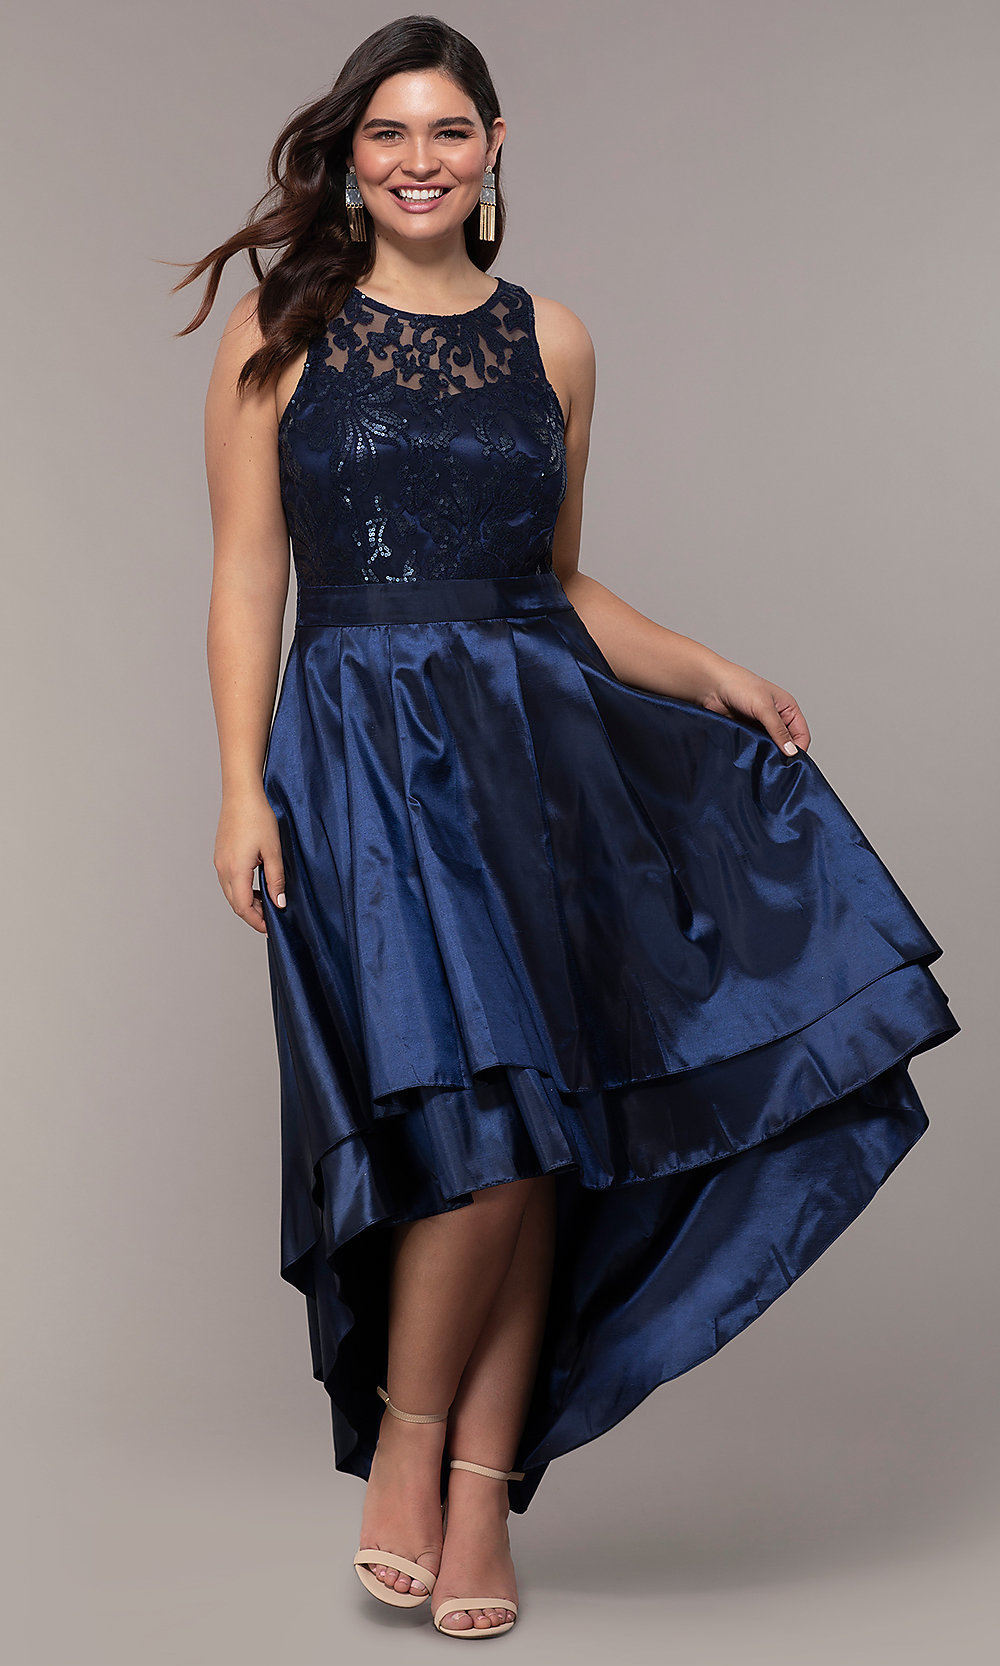 Sequin-Bodice Simply Plus-Size Prom Dress - PromGirl